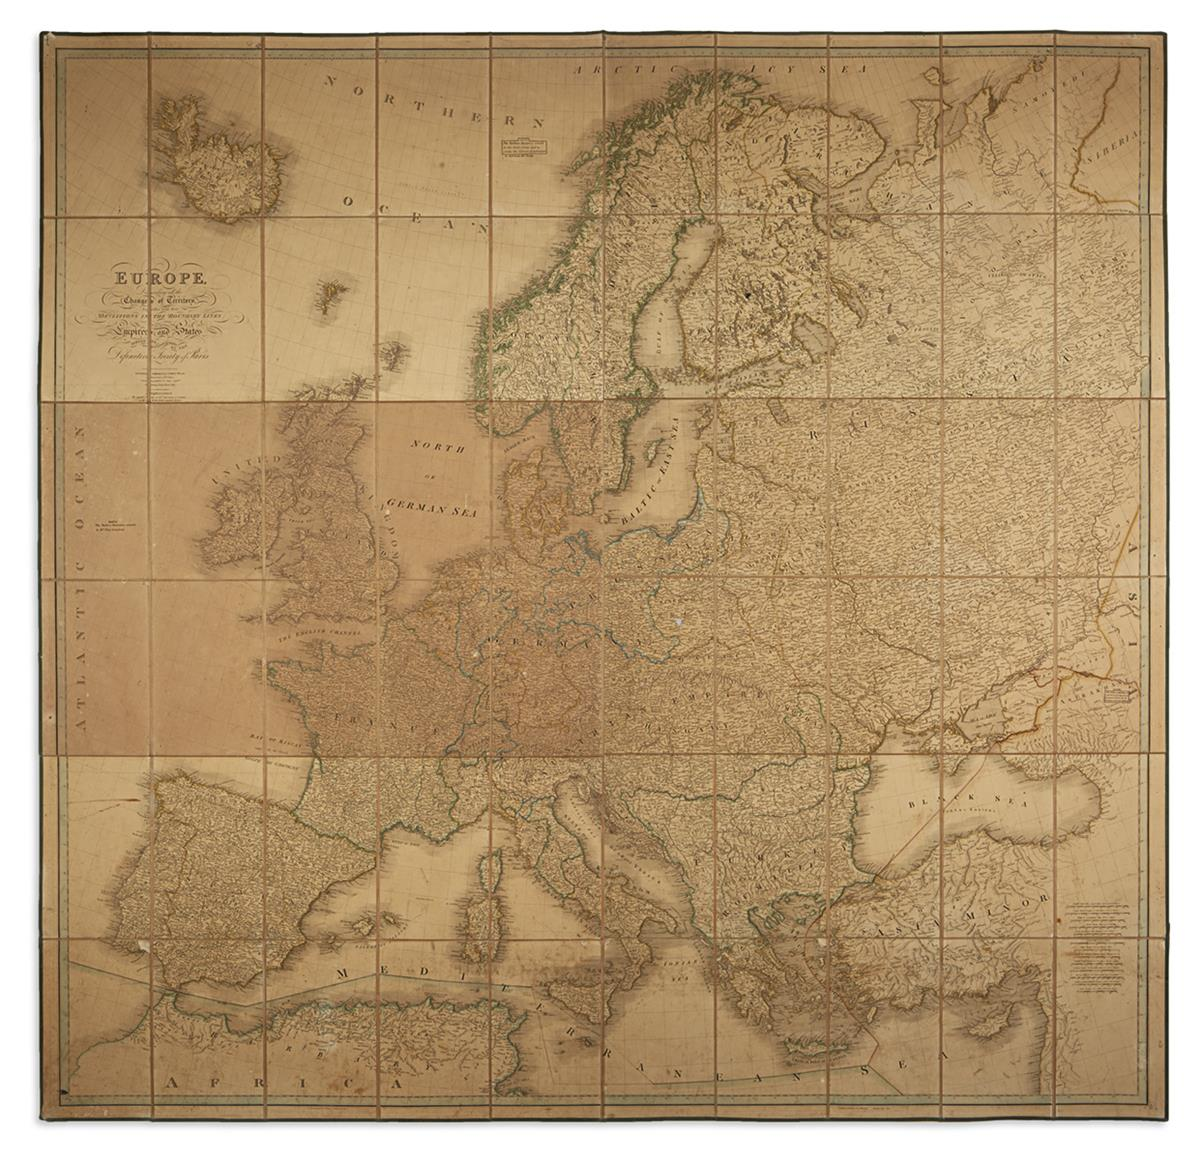 WYLD-JAMES-Europe-Describing-all-the-Changes-of-Territory-To